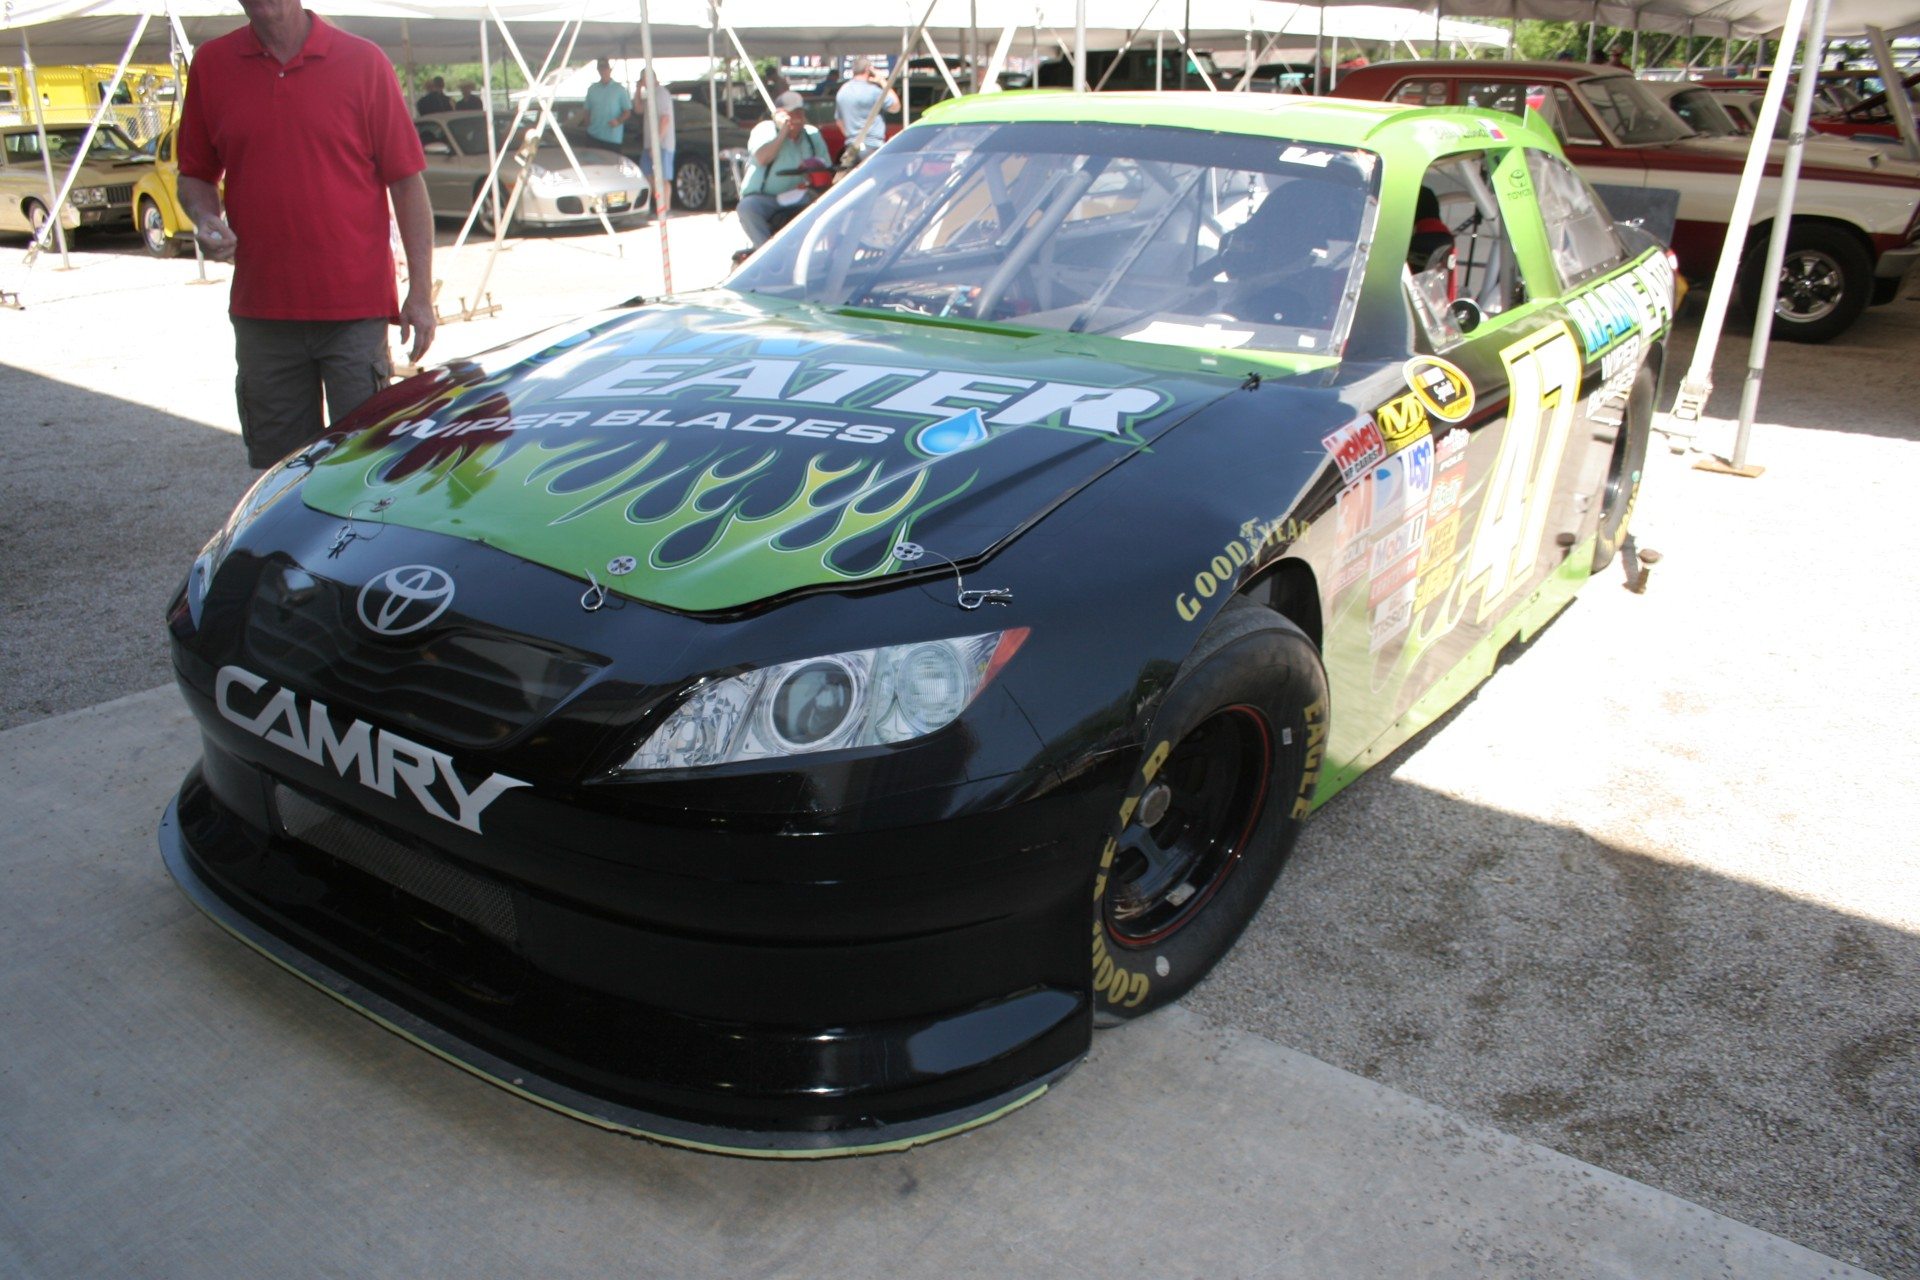 3rd Image of a 2012 TOYOTA CAMRY NASCAR